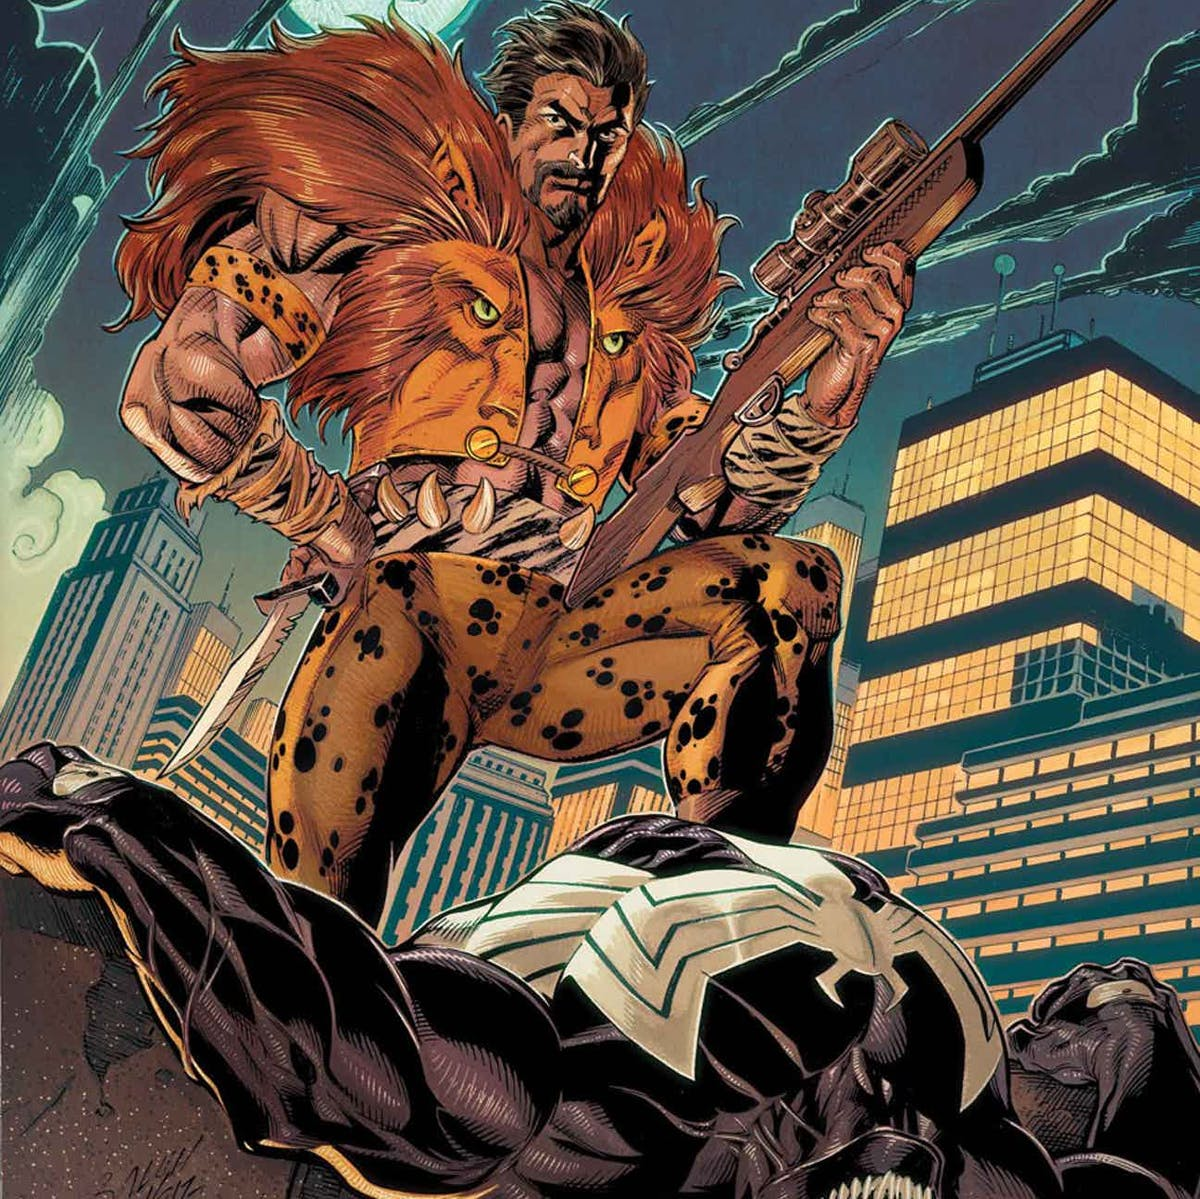 'Spider-Man 3' filming hints at Kraven, but what about his solo movie?